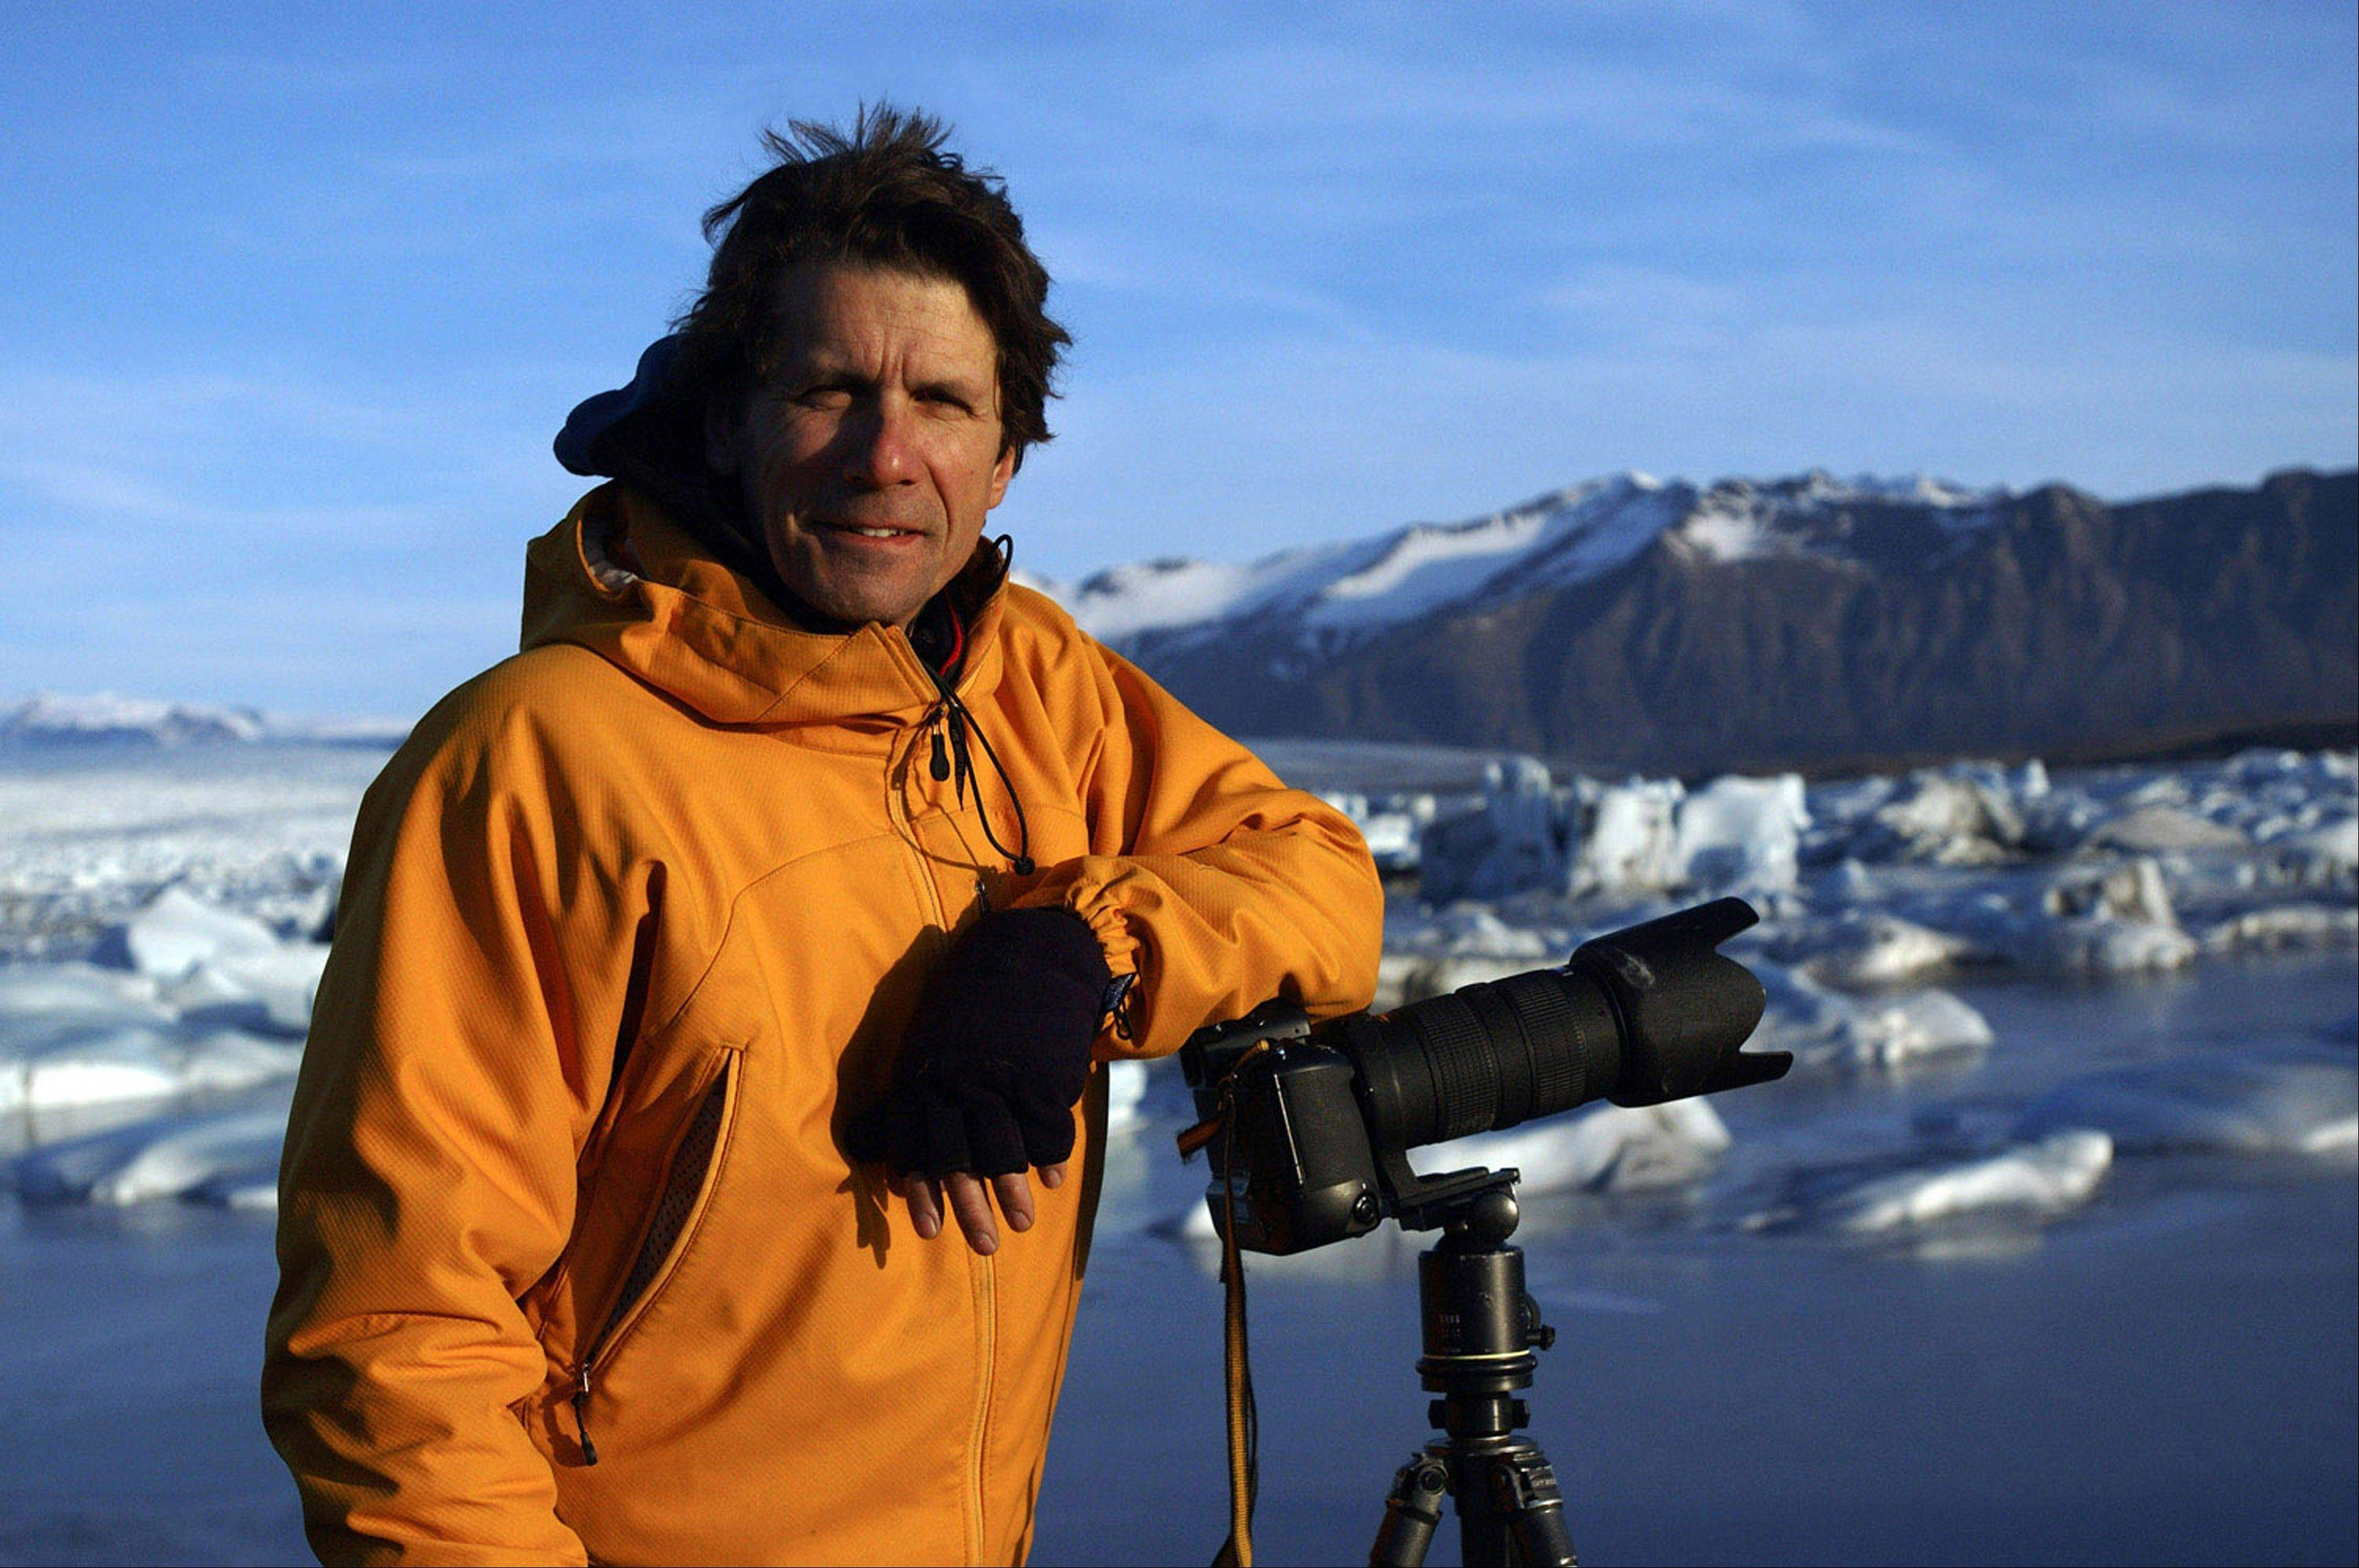 James Balog, a scientist and nature photographer, shown in Jokulsarlon, Iceland, founded Extreme Ice Survey to capture the melting of glaciers with time-lapse photography.